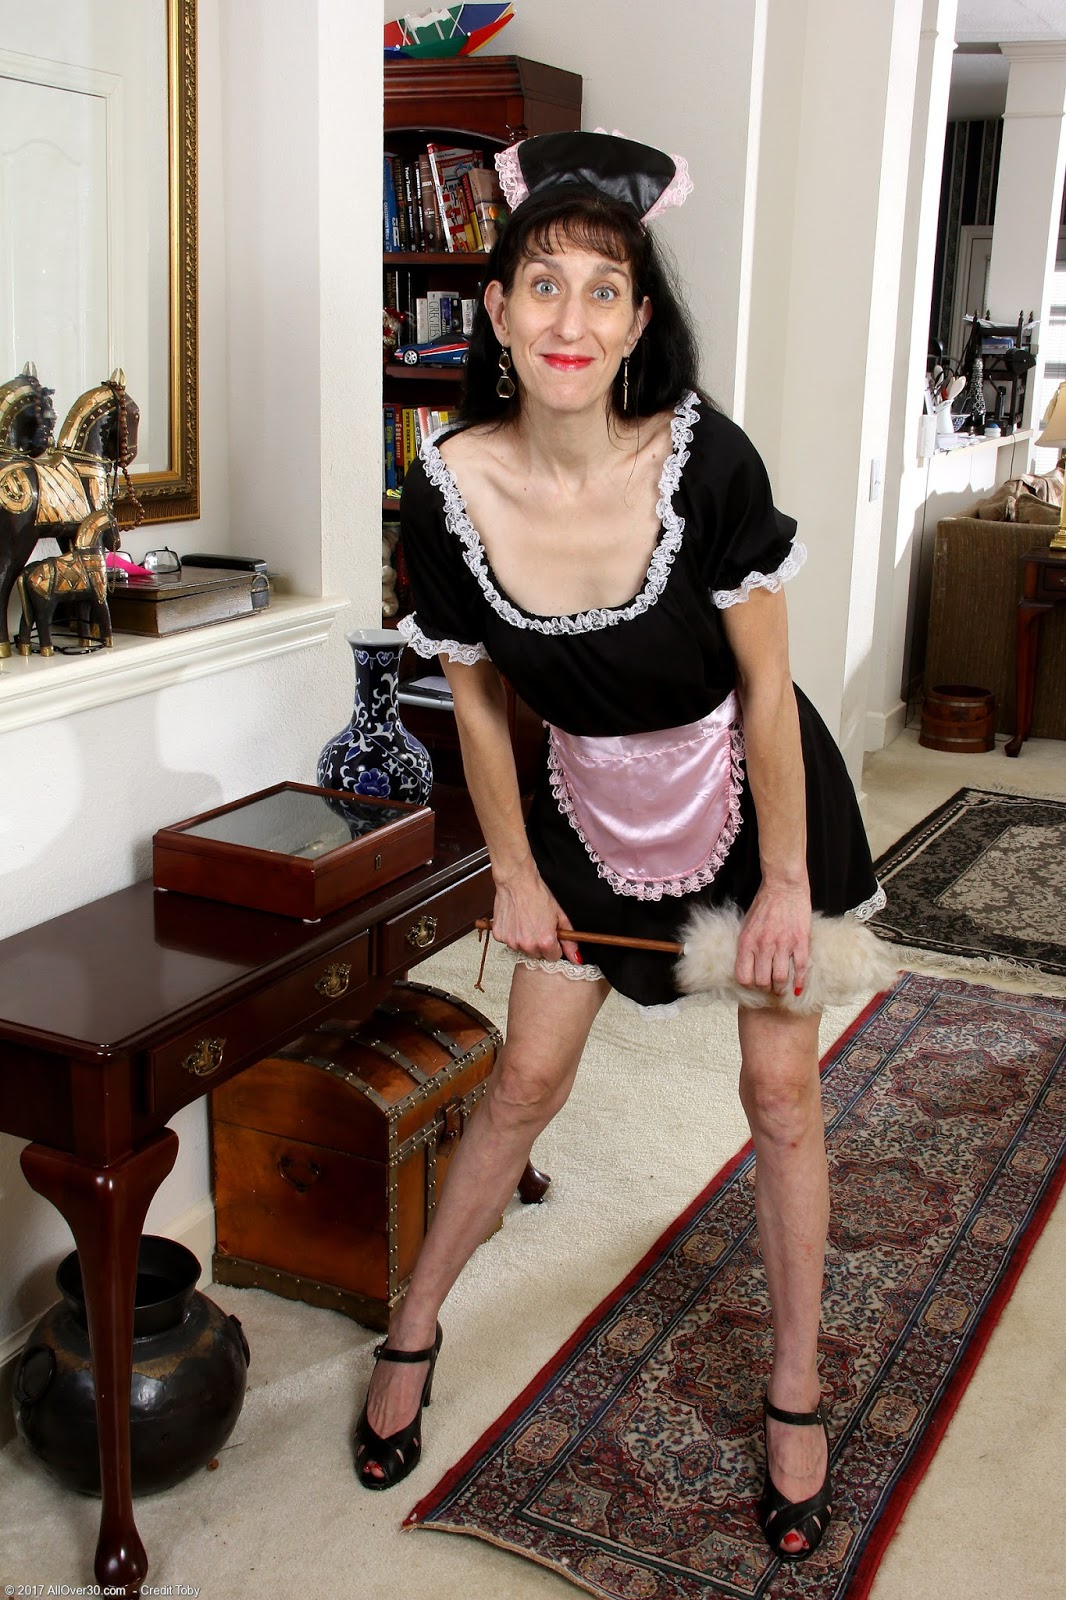 A french mature martine gangbanged outdoor - 4 6